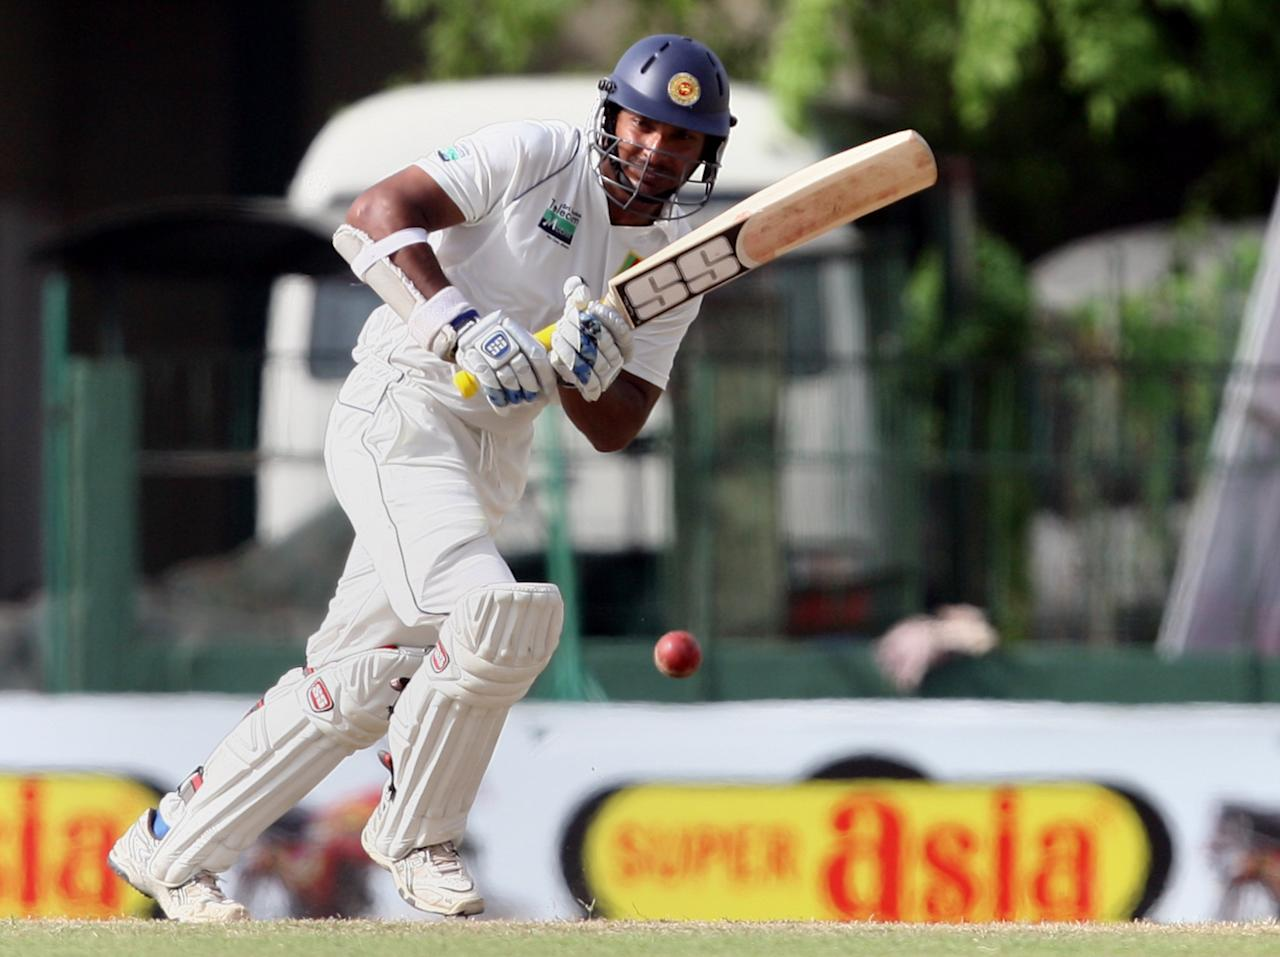 COLOMBO, SRI LANKA - JULY 03:  Kumar Sangakkara of Sri Lanka bats during day four of the second test between Sri Lanka and Pakistan at Sinhalese Sports Club on July 3, 2012 in Colombo, Sri Lanka.  (Photo by Buddhika Weerasinghe/Getty Images)